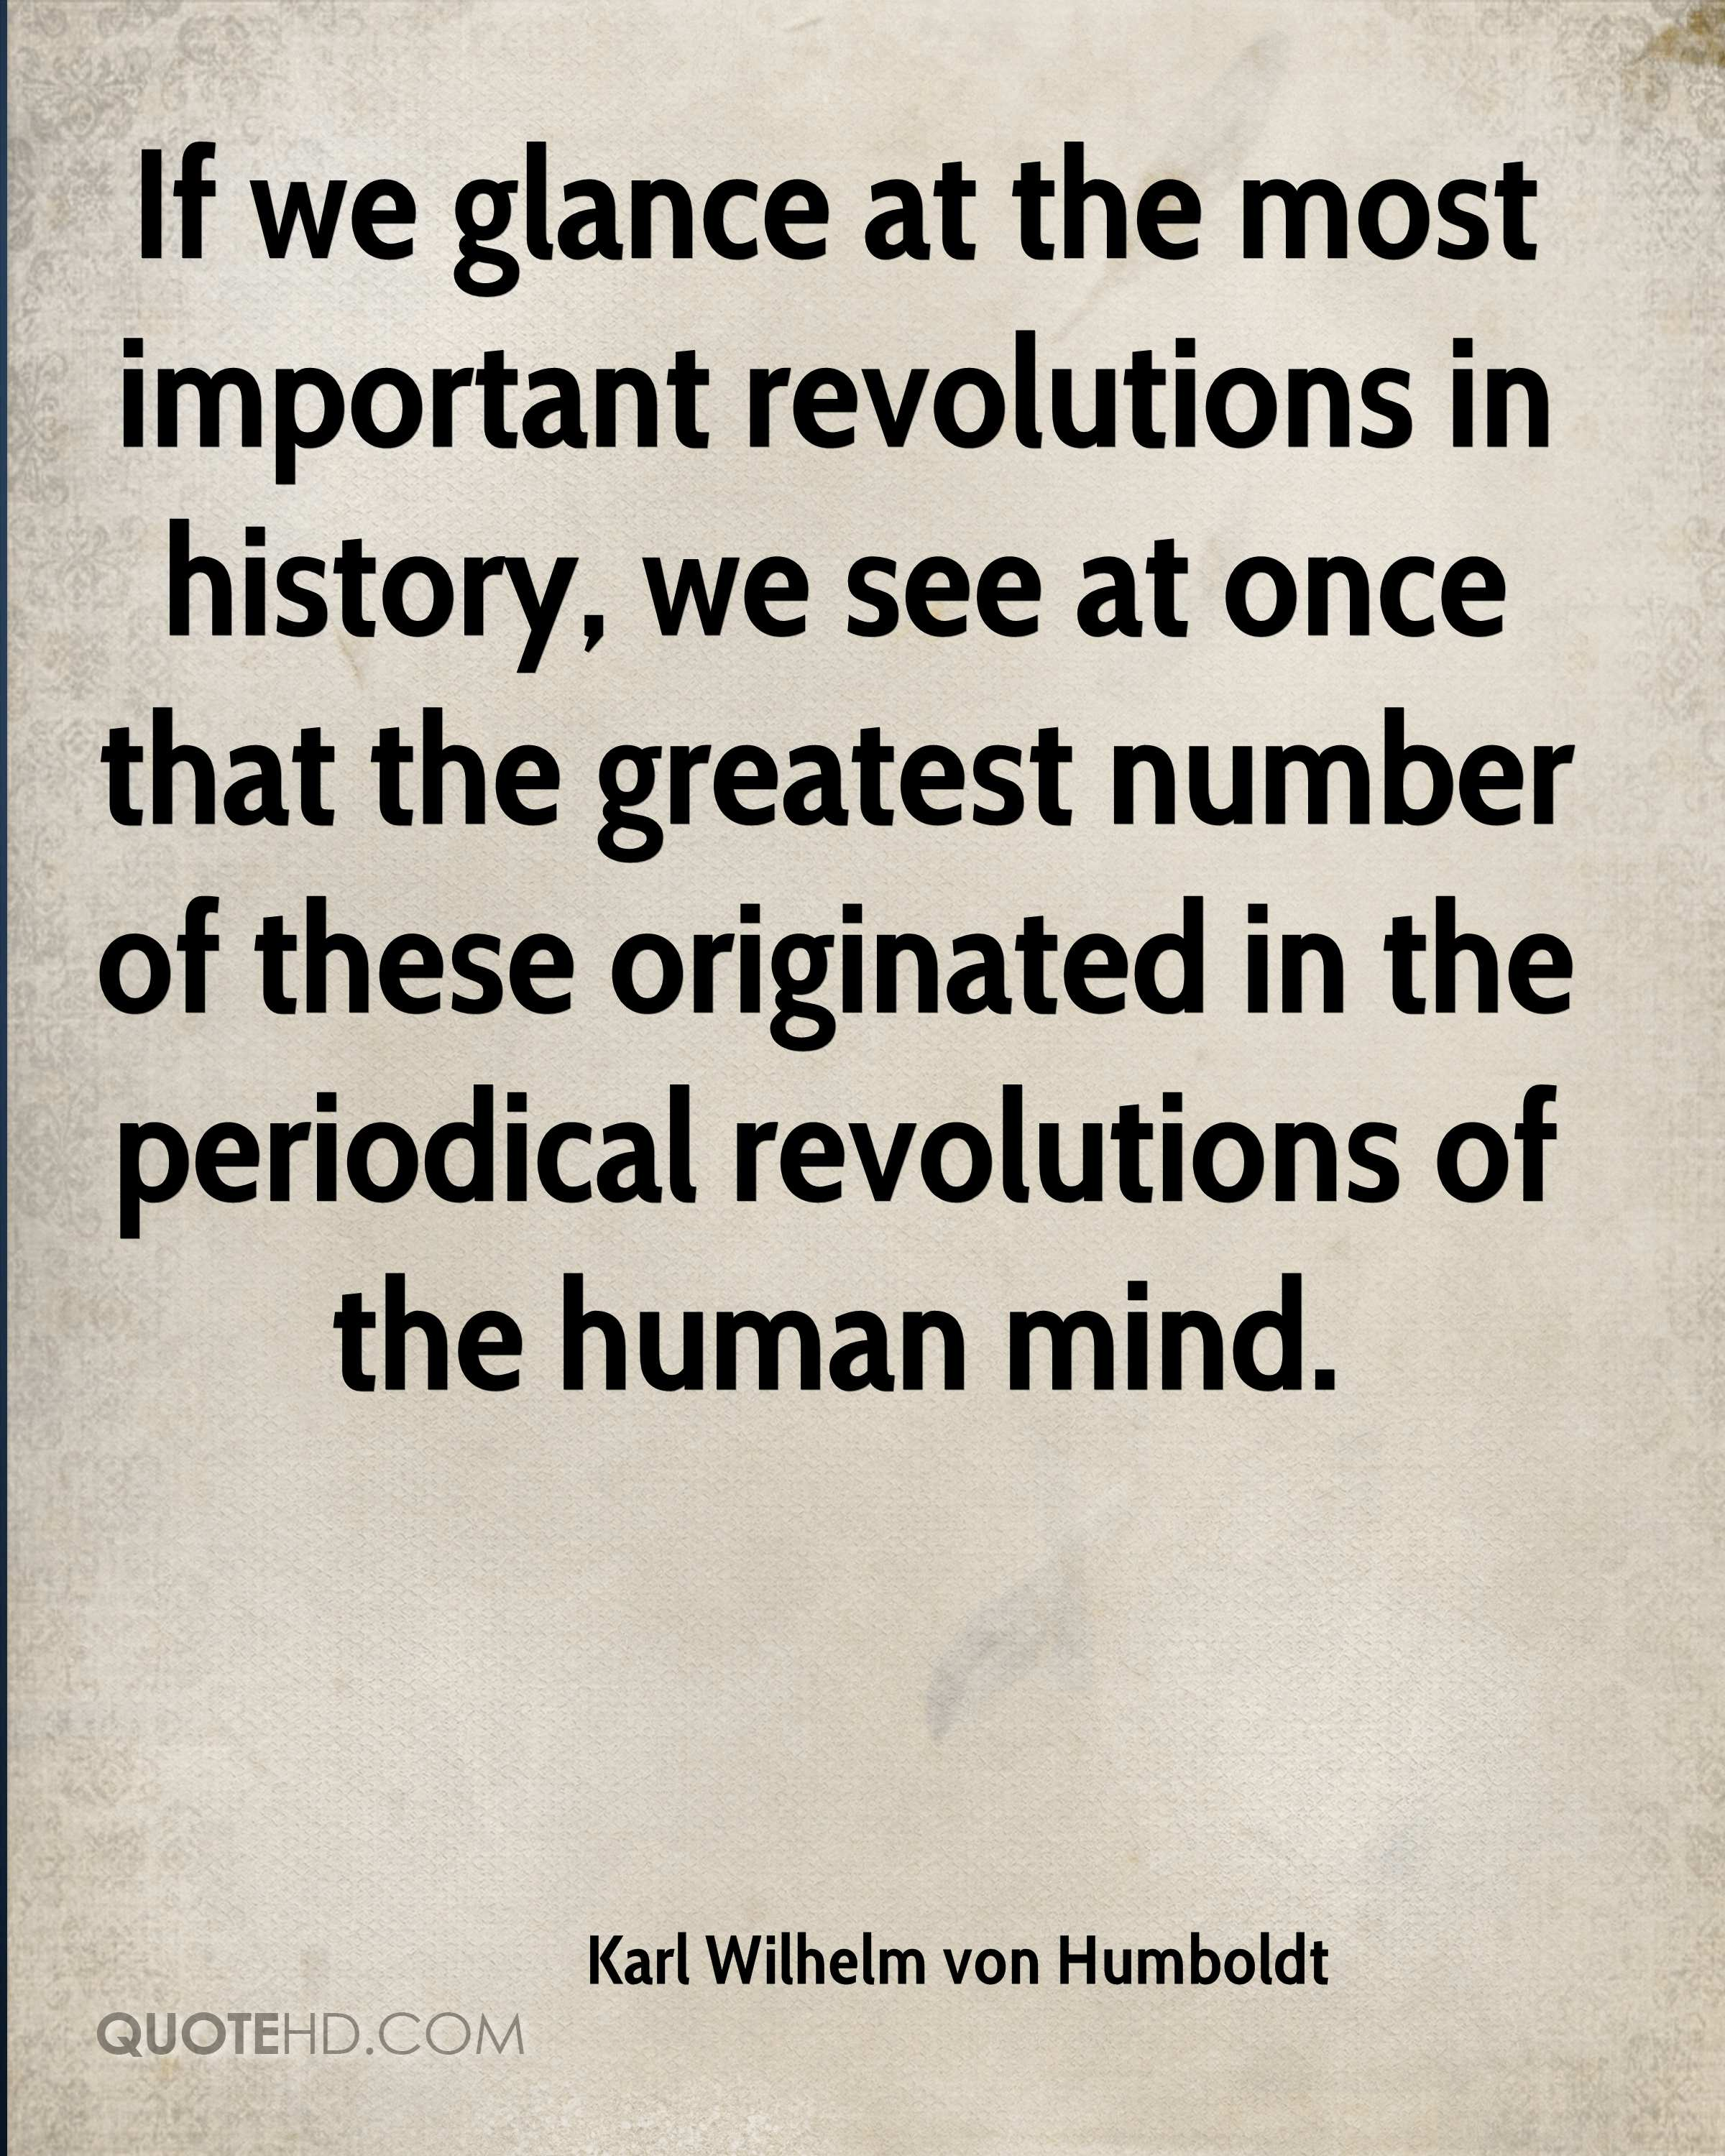 If we glance at the most important revolutions in history, we see at once that the greatest number of these originated in the periodical revolutions of the human mind.